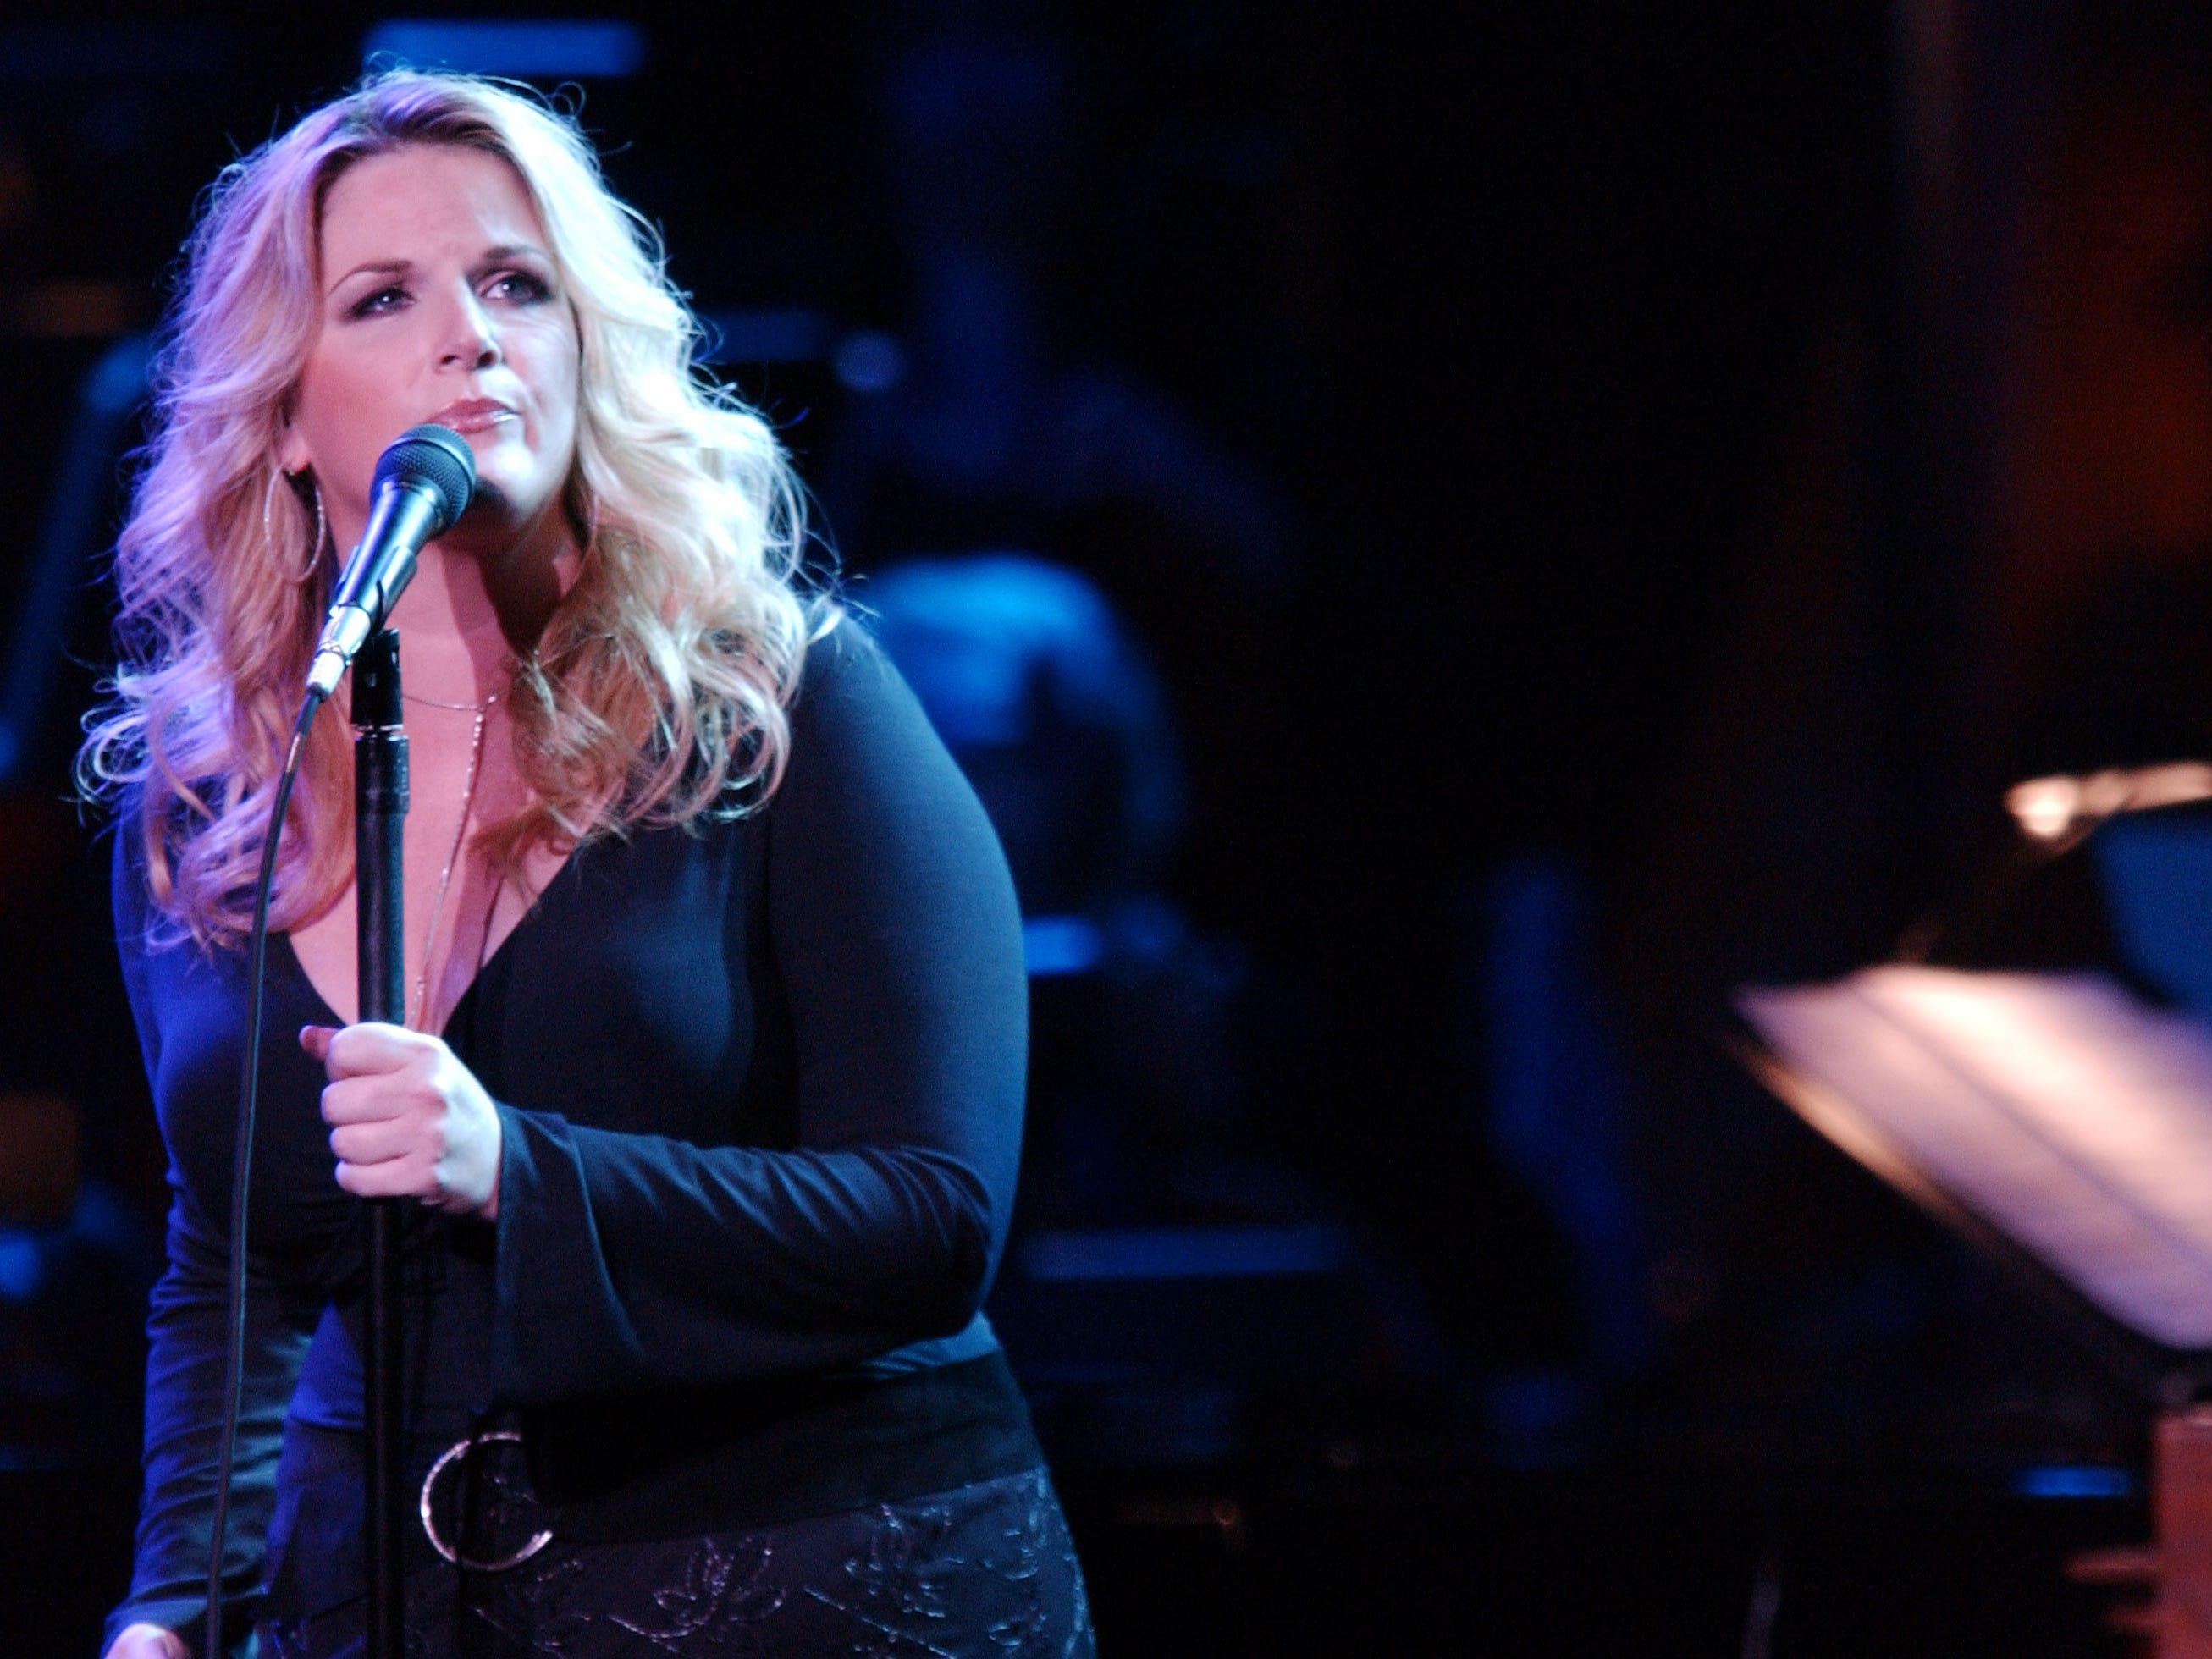 """Trisha Yearwood performs at the """"Stormy Weather 2002"""" concert at the Wiltern Theatre on November 13, 2002 in Los Angeles, California."""